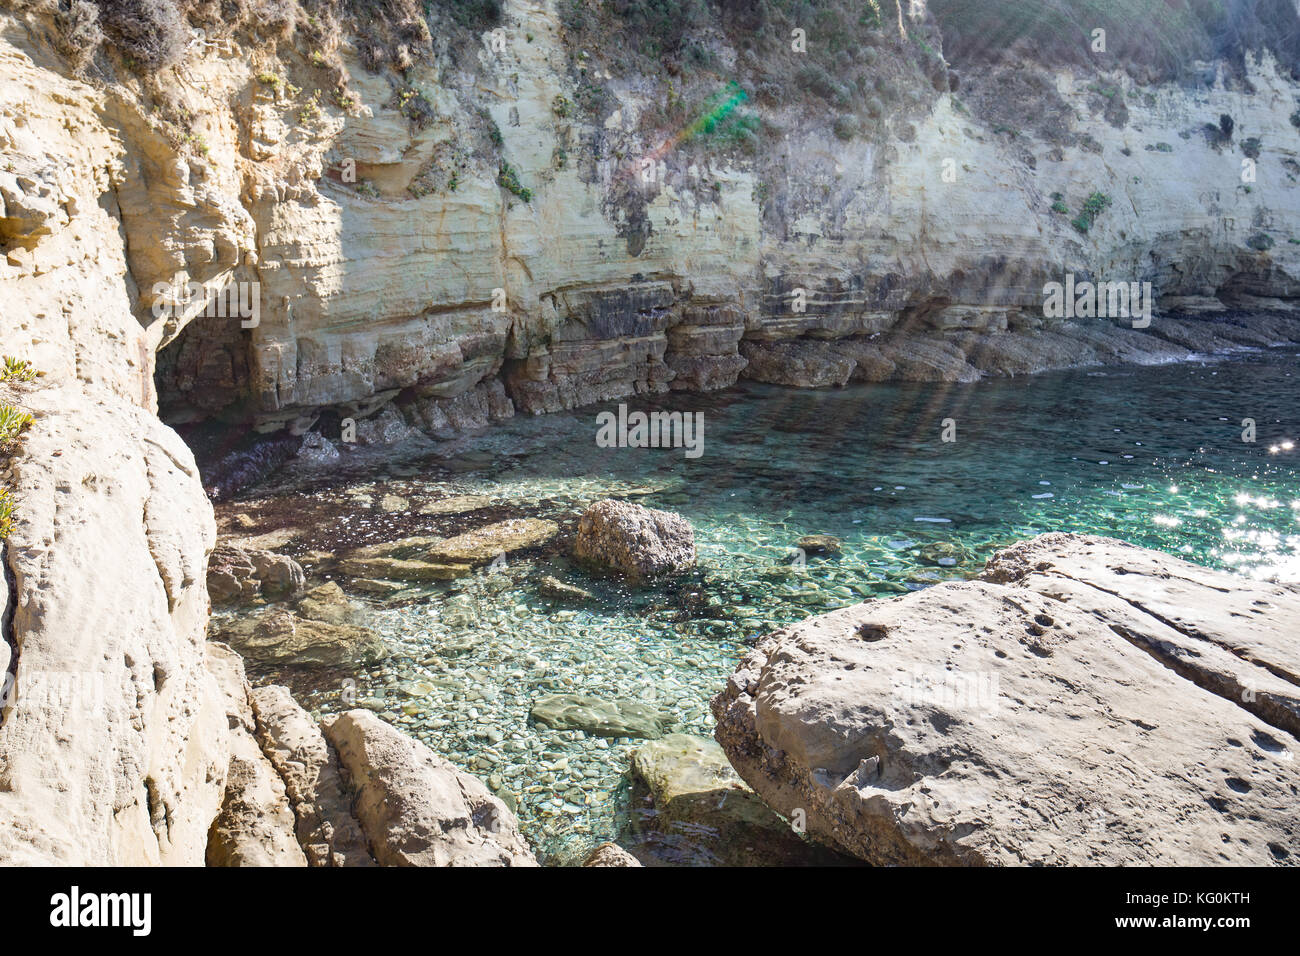 Rocks by the Ionian Sea, Corfu, Greece, cristal clear blue or turquoise sea water, holidays, vacation in the mediterranean - Stock Image